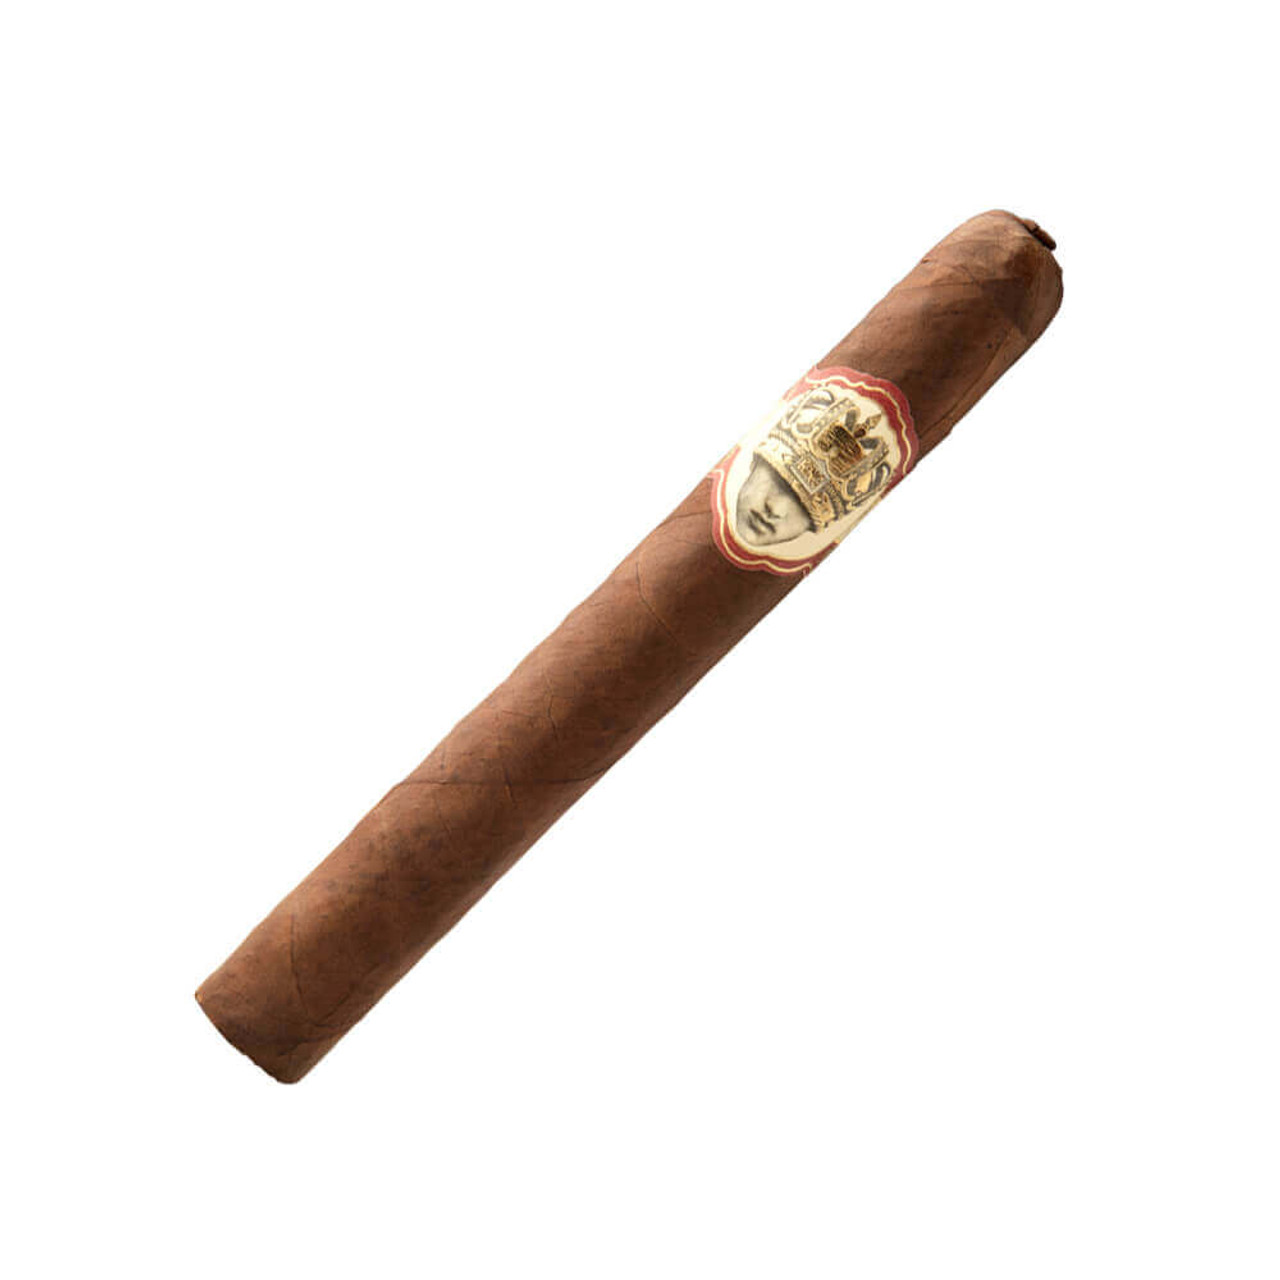 Caldwell Long Live The King The Heater Cigars - 5.75 x 46 (Box of 24)